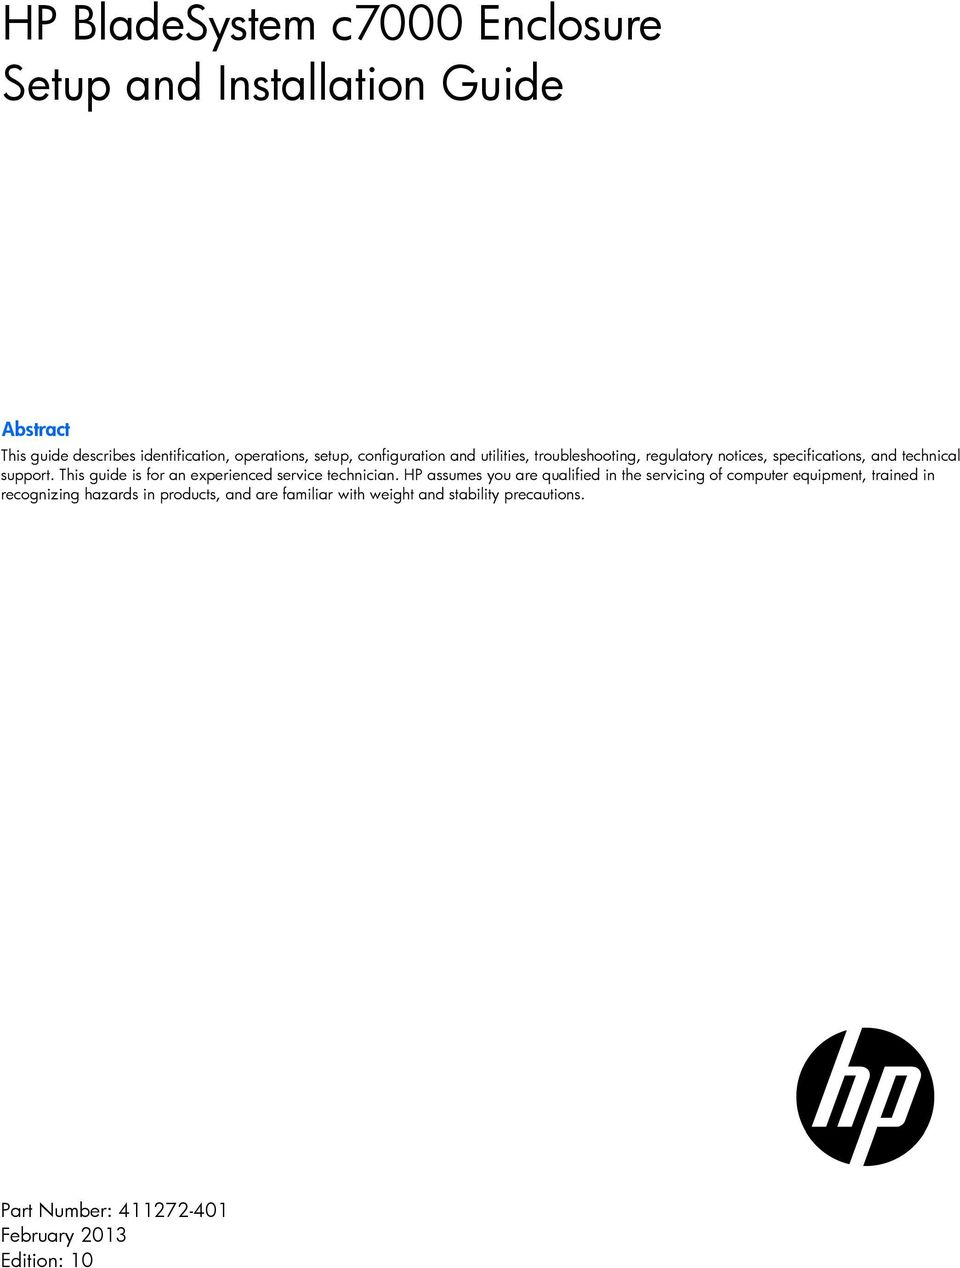 HP BladeSystem c7000 Enclosure Setup and Installation Guide